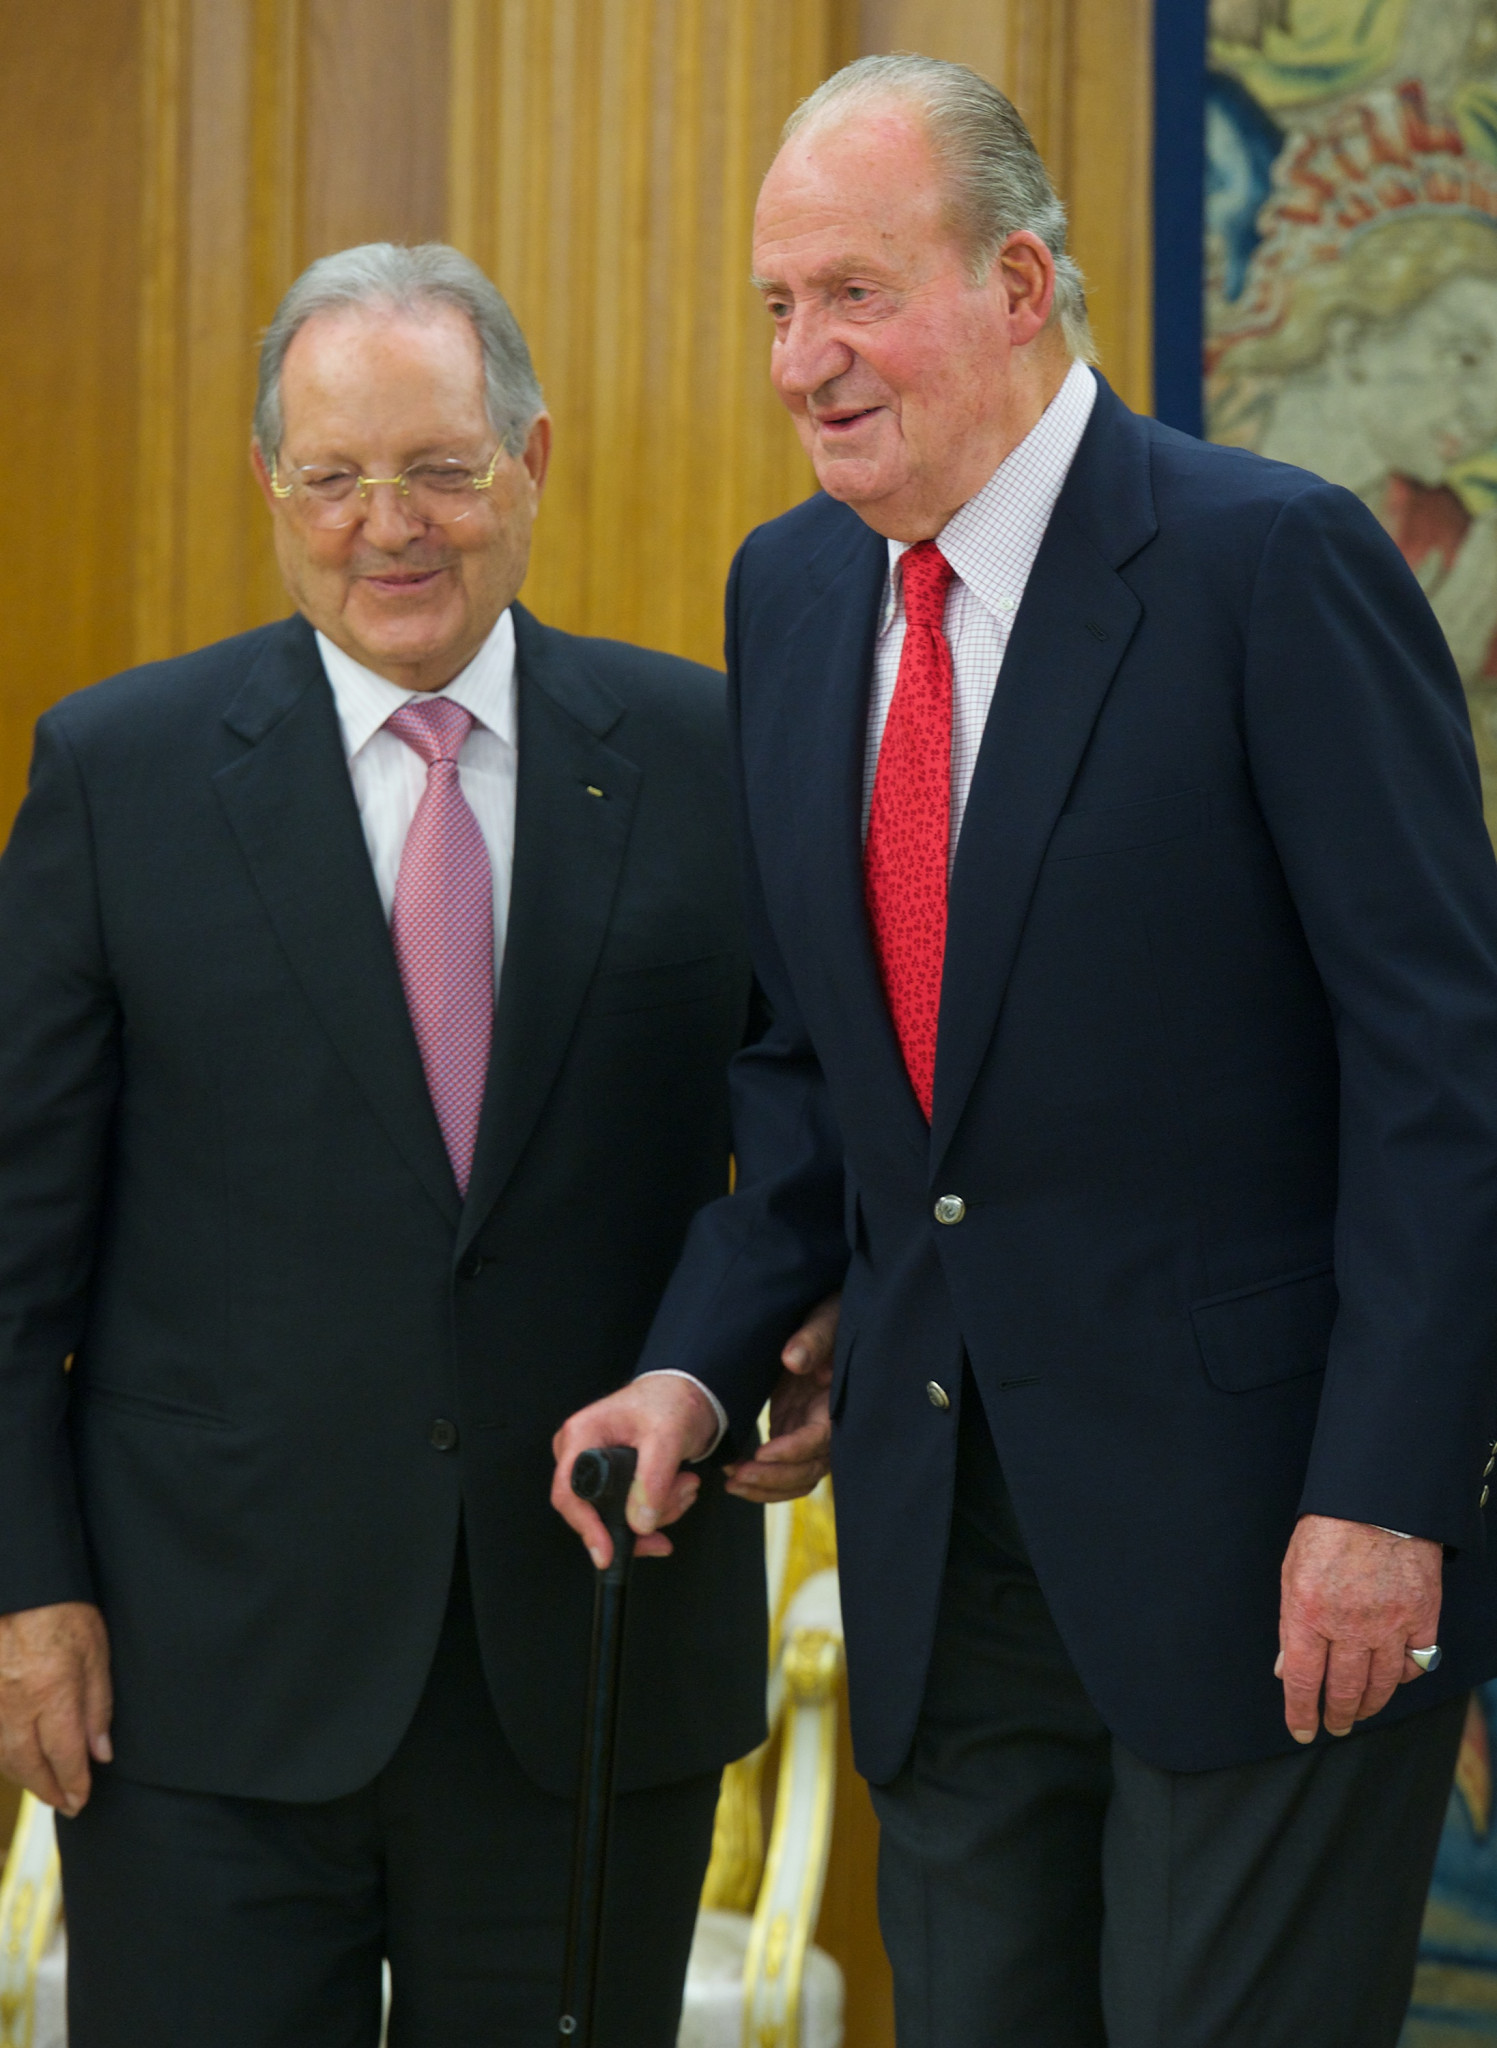 Olegario Vázquez Raña, pictured here with Juan Carlos I of Spain, has been President of the ISSF for 38 years ©Getty Images